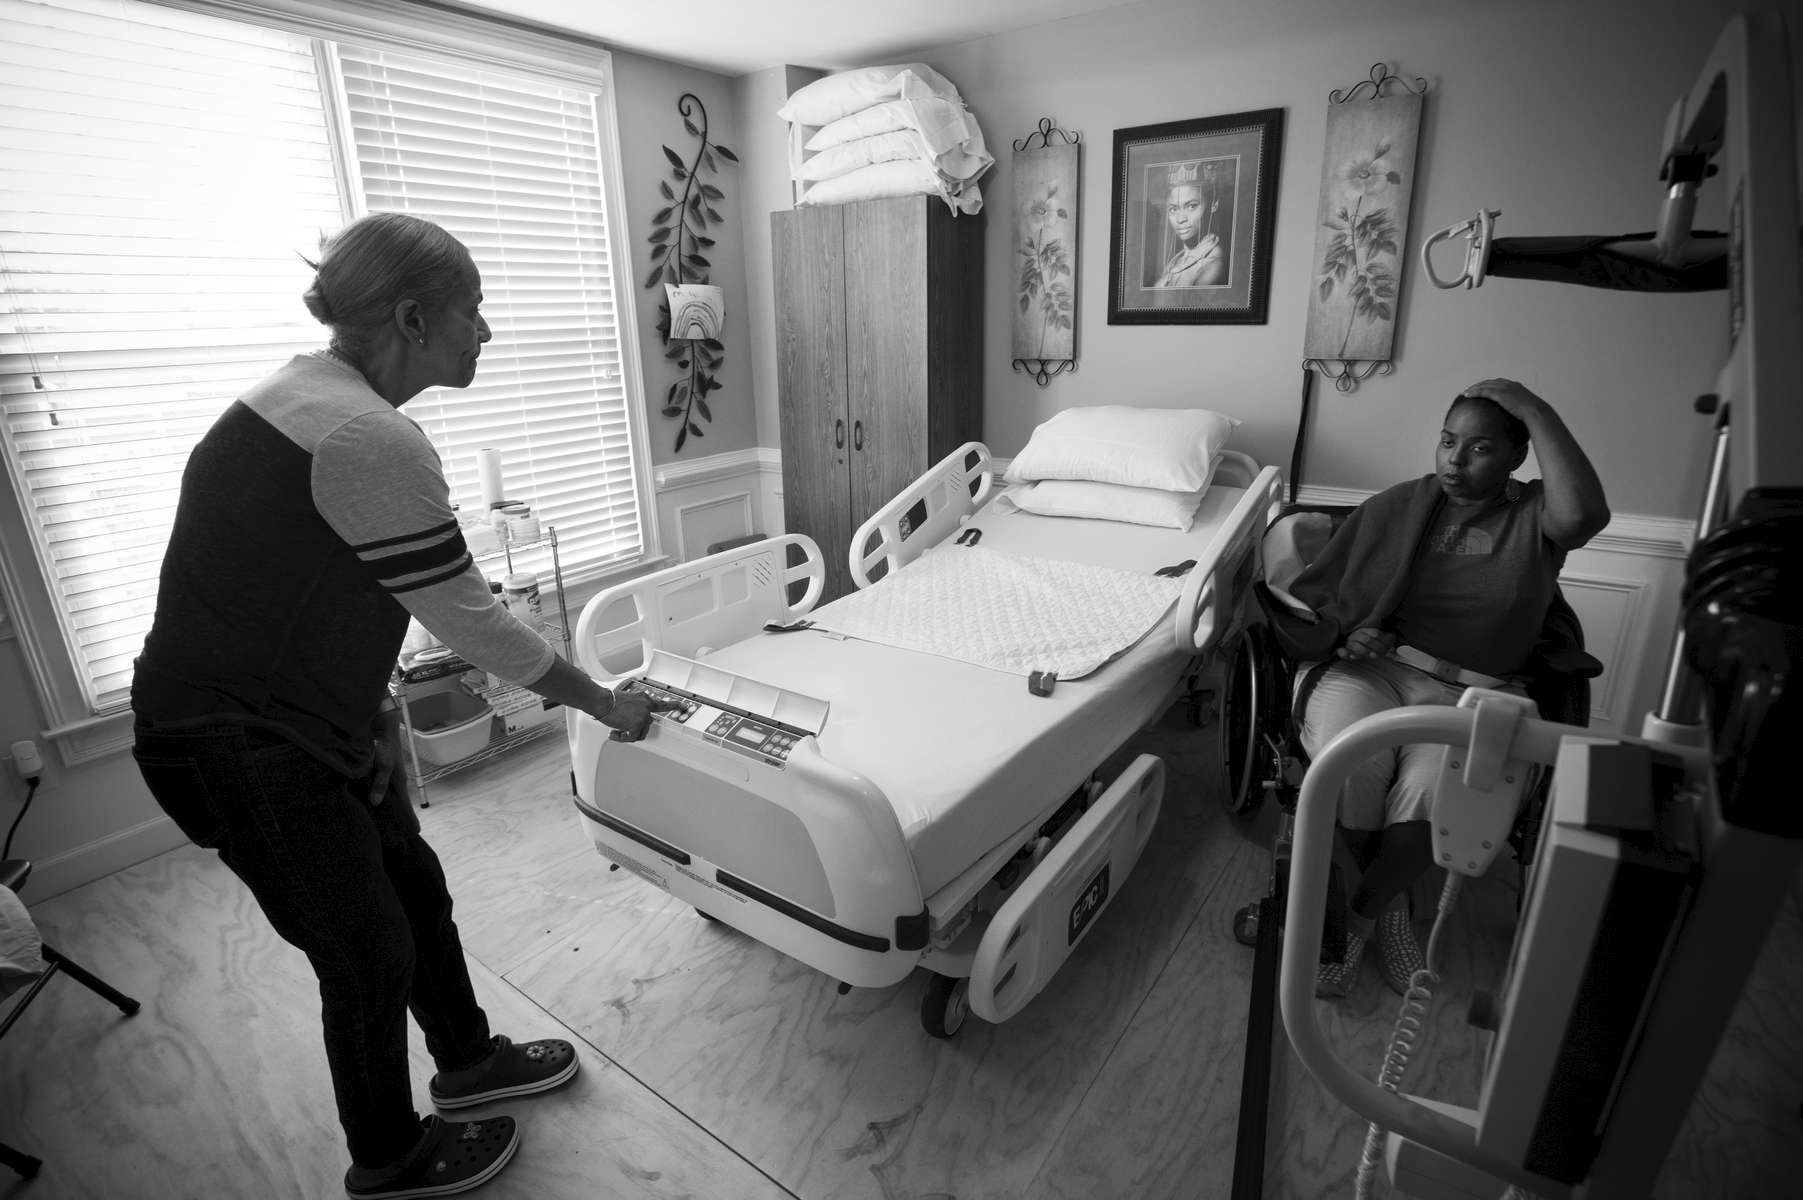 Erika Jones, 32,  is on the slow path to recovery from a brain tumor that left her paralyzed and unable to speak more than a few words. Her mother Joyce Jones insisted she be moved back into her family's home rather than a nursing facility. {quote}I am committed to caring for my baby until the day I die,{quote} Joyce explained. {quote}She wouldn't get that love in a nursing home.{quote} Pictured: Joyce Jones chats with Erika in what was once family dining room, now converted to Erika's room on the ground floor.